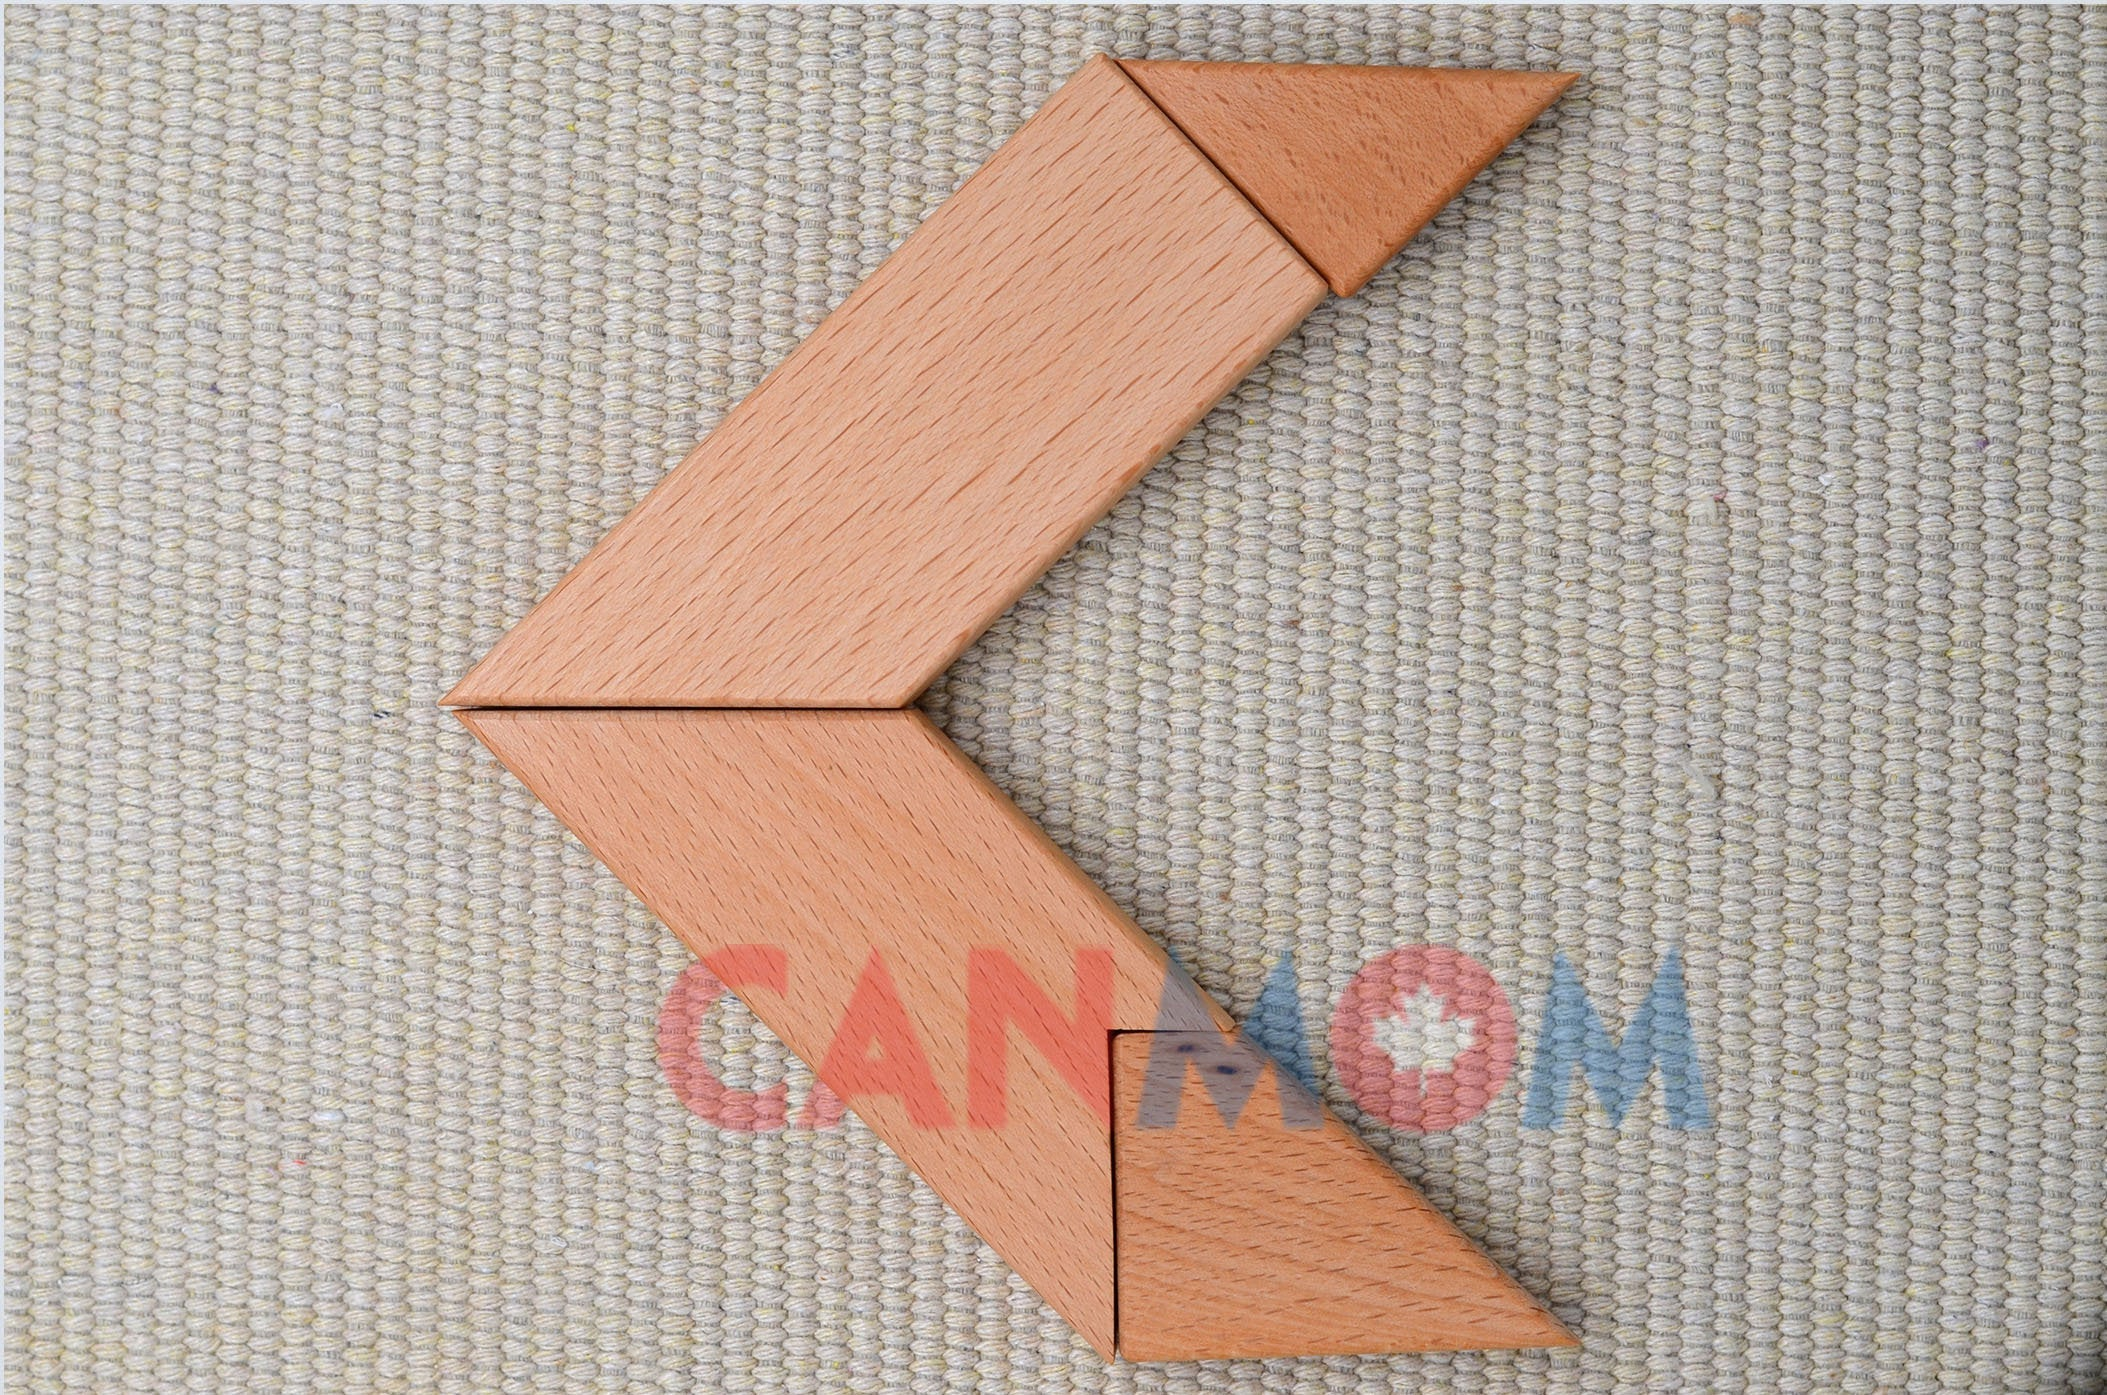 Natural wooden puzzle learning toy / brain teaser / birthday gift / puzzles tangram